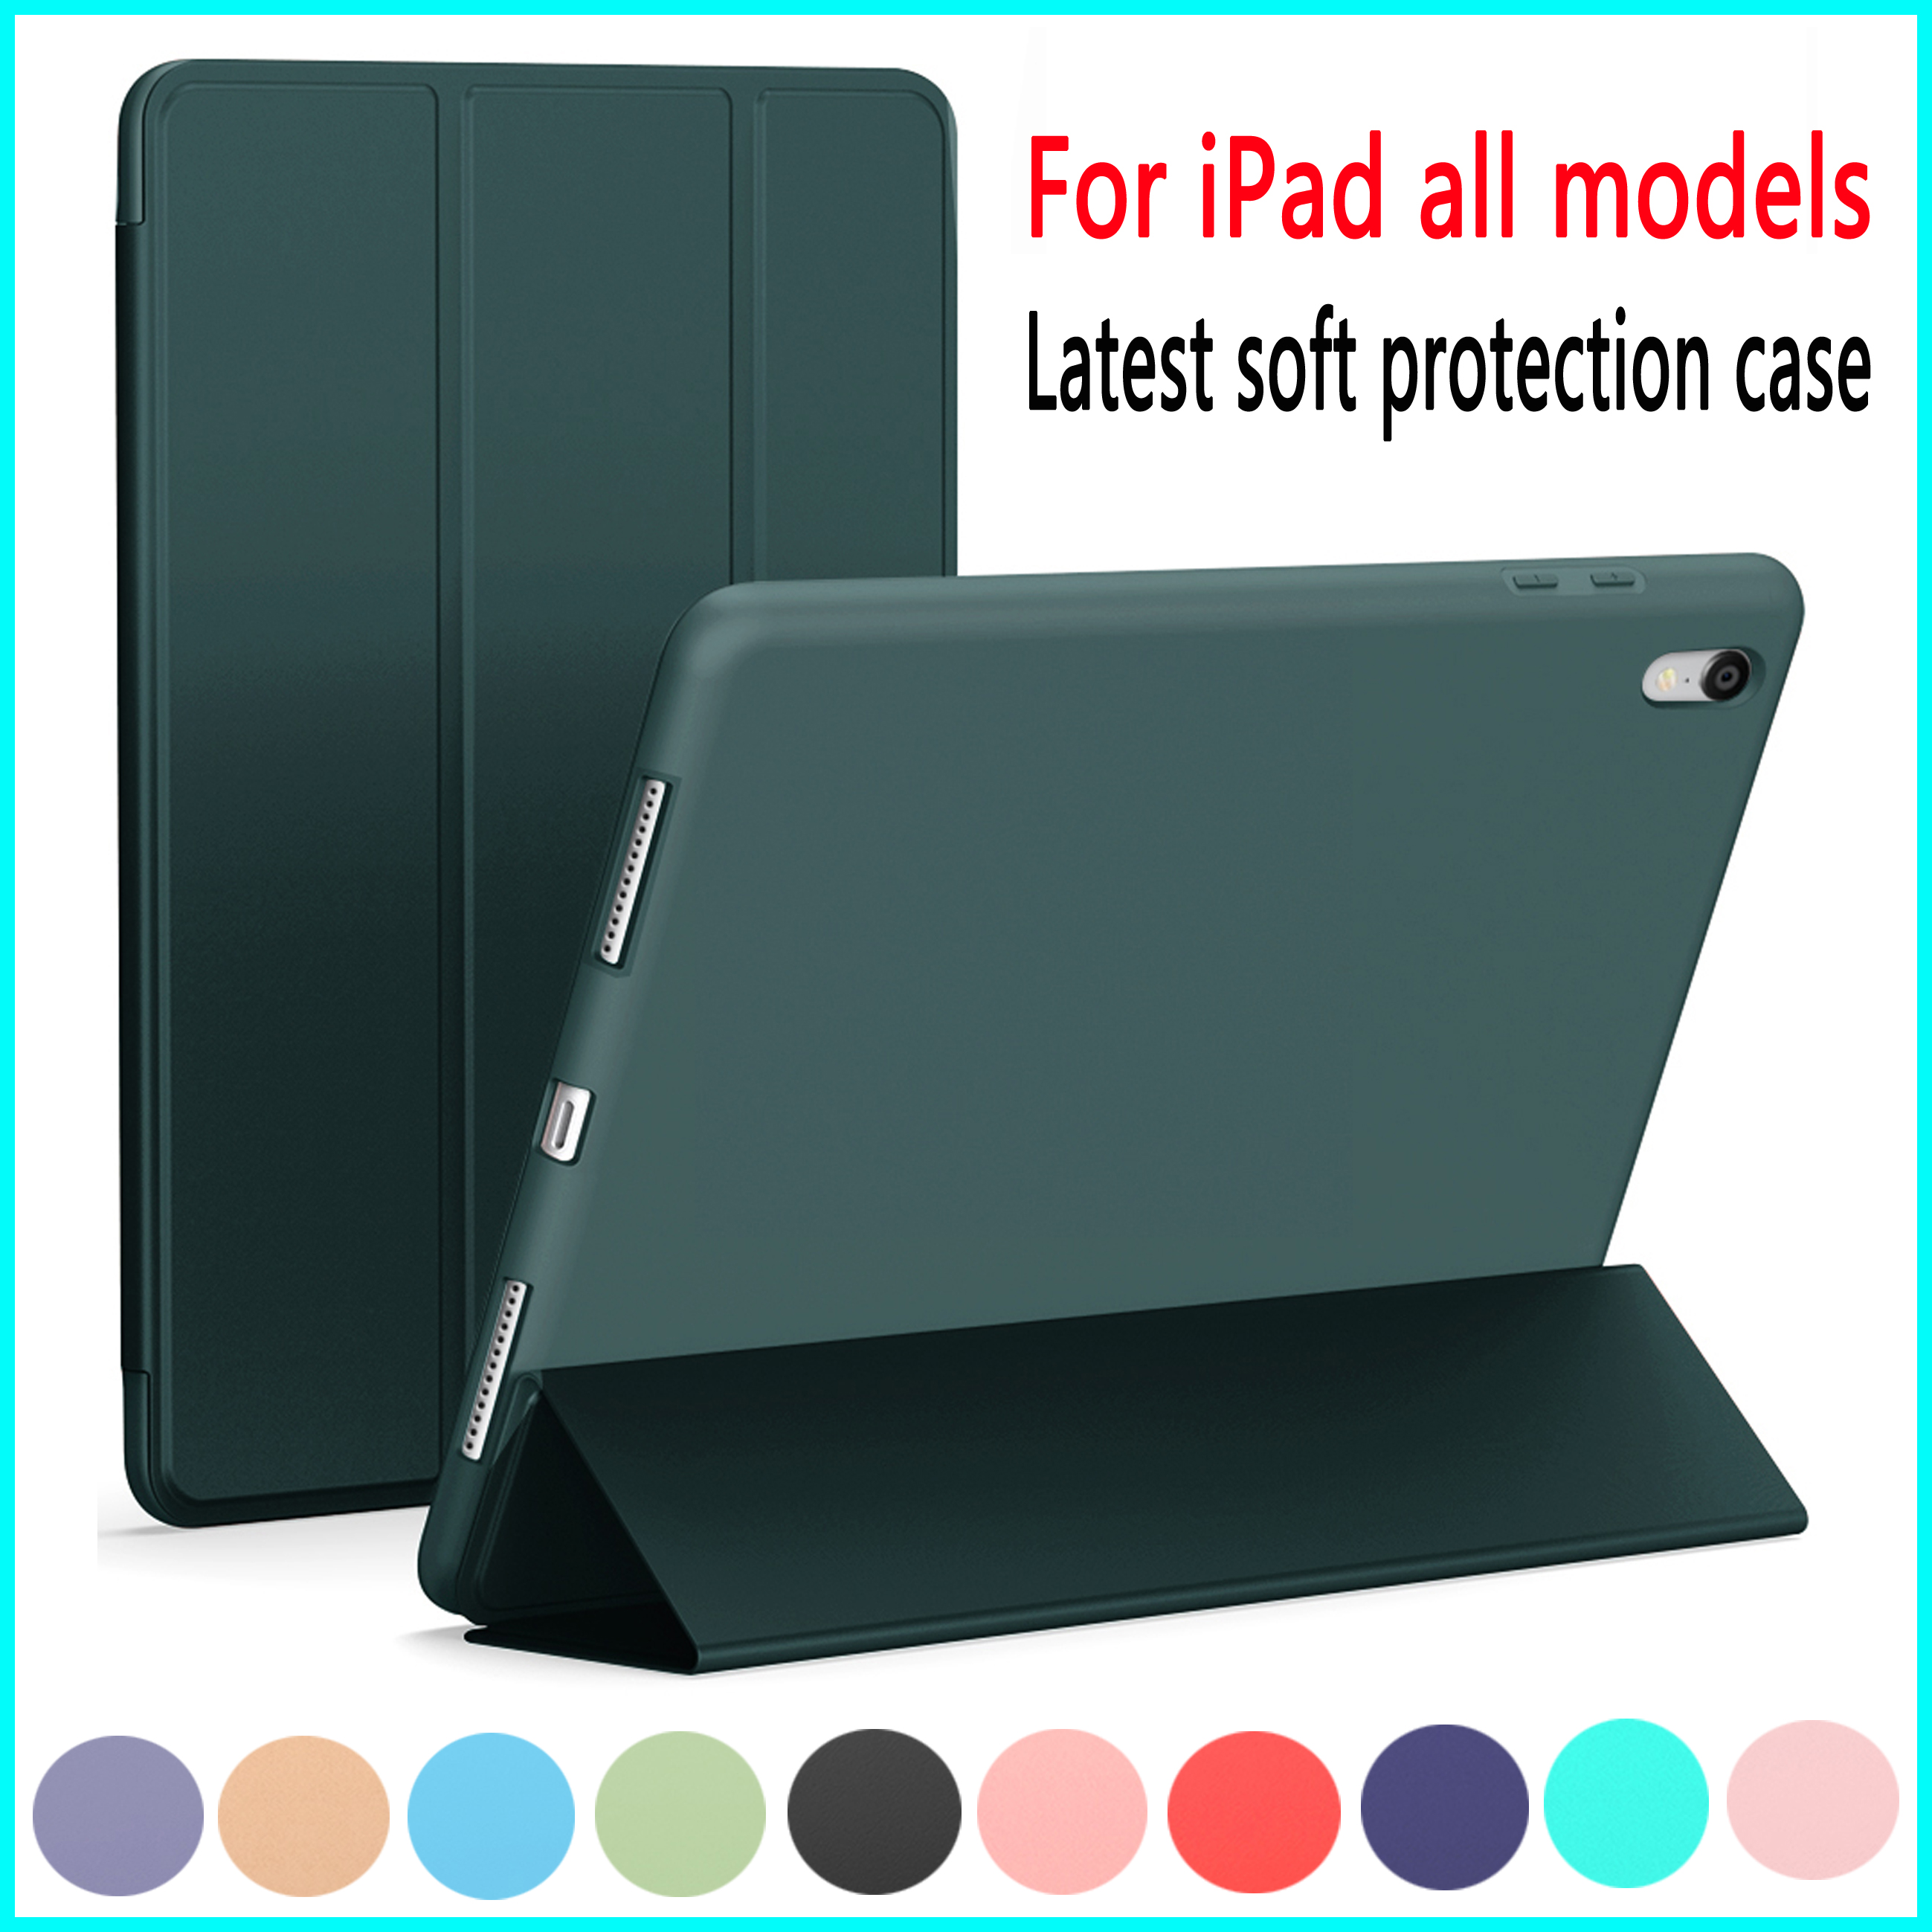 Celular Case Para Novo iPad 2020 Ar 3 11 4 10.9 polegada Case Capa para iPad Air 10.5 10.2 9.7 Pro mini 1 2 3 4 5 2019